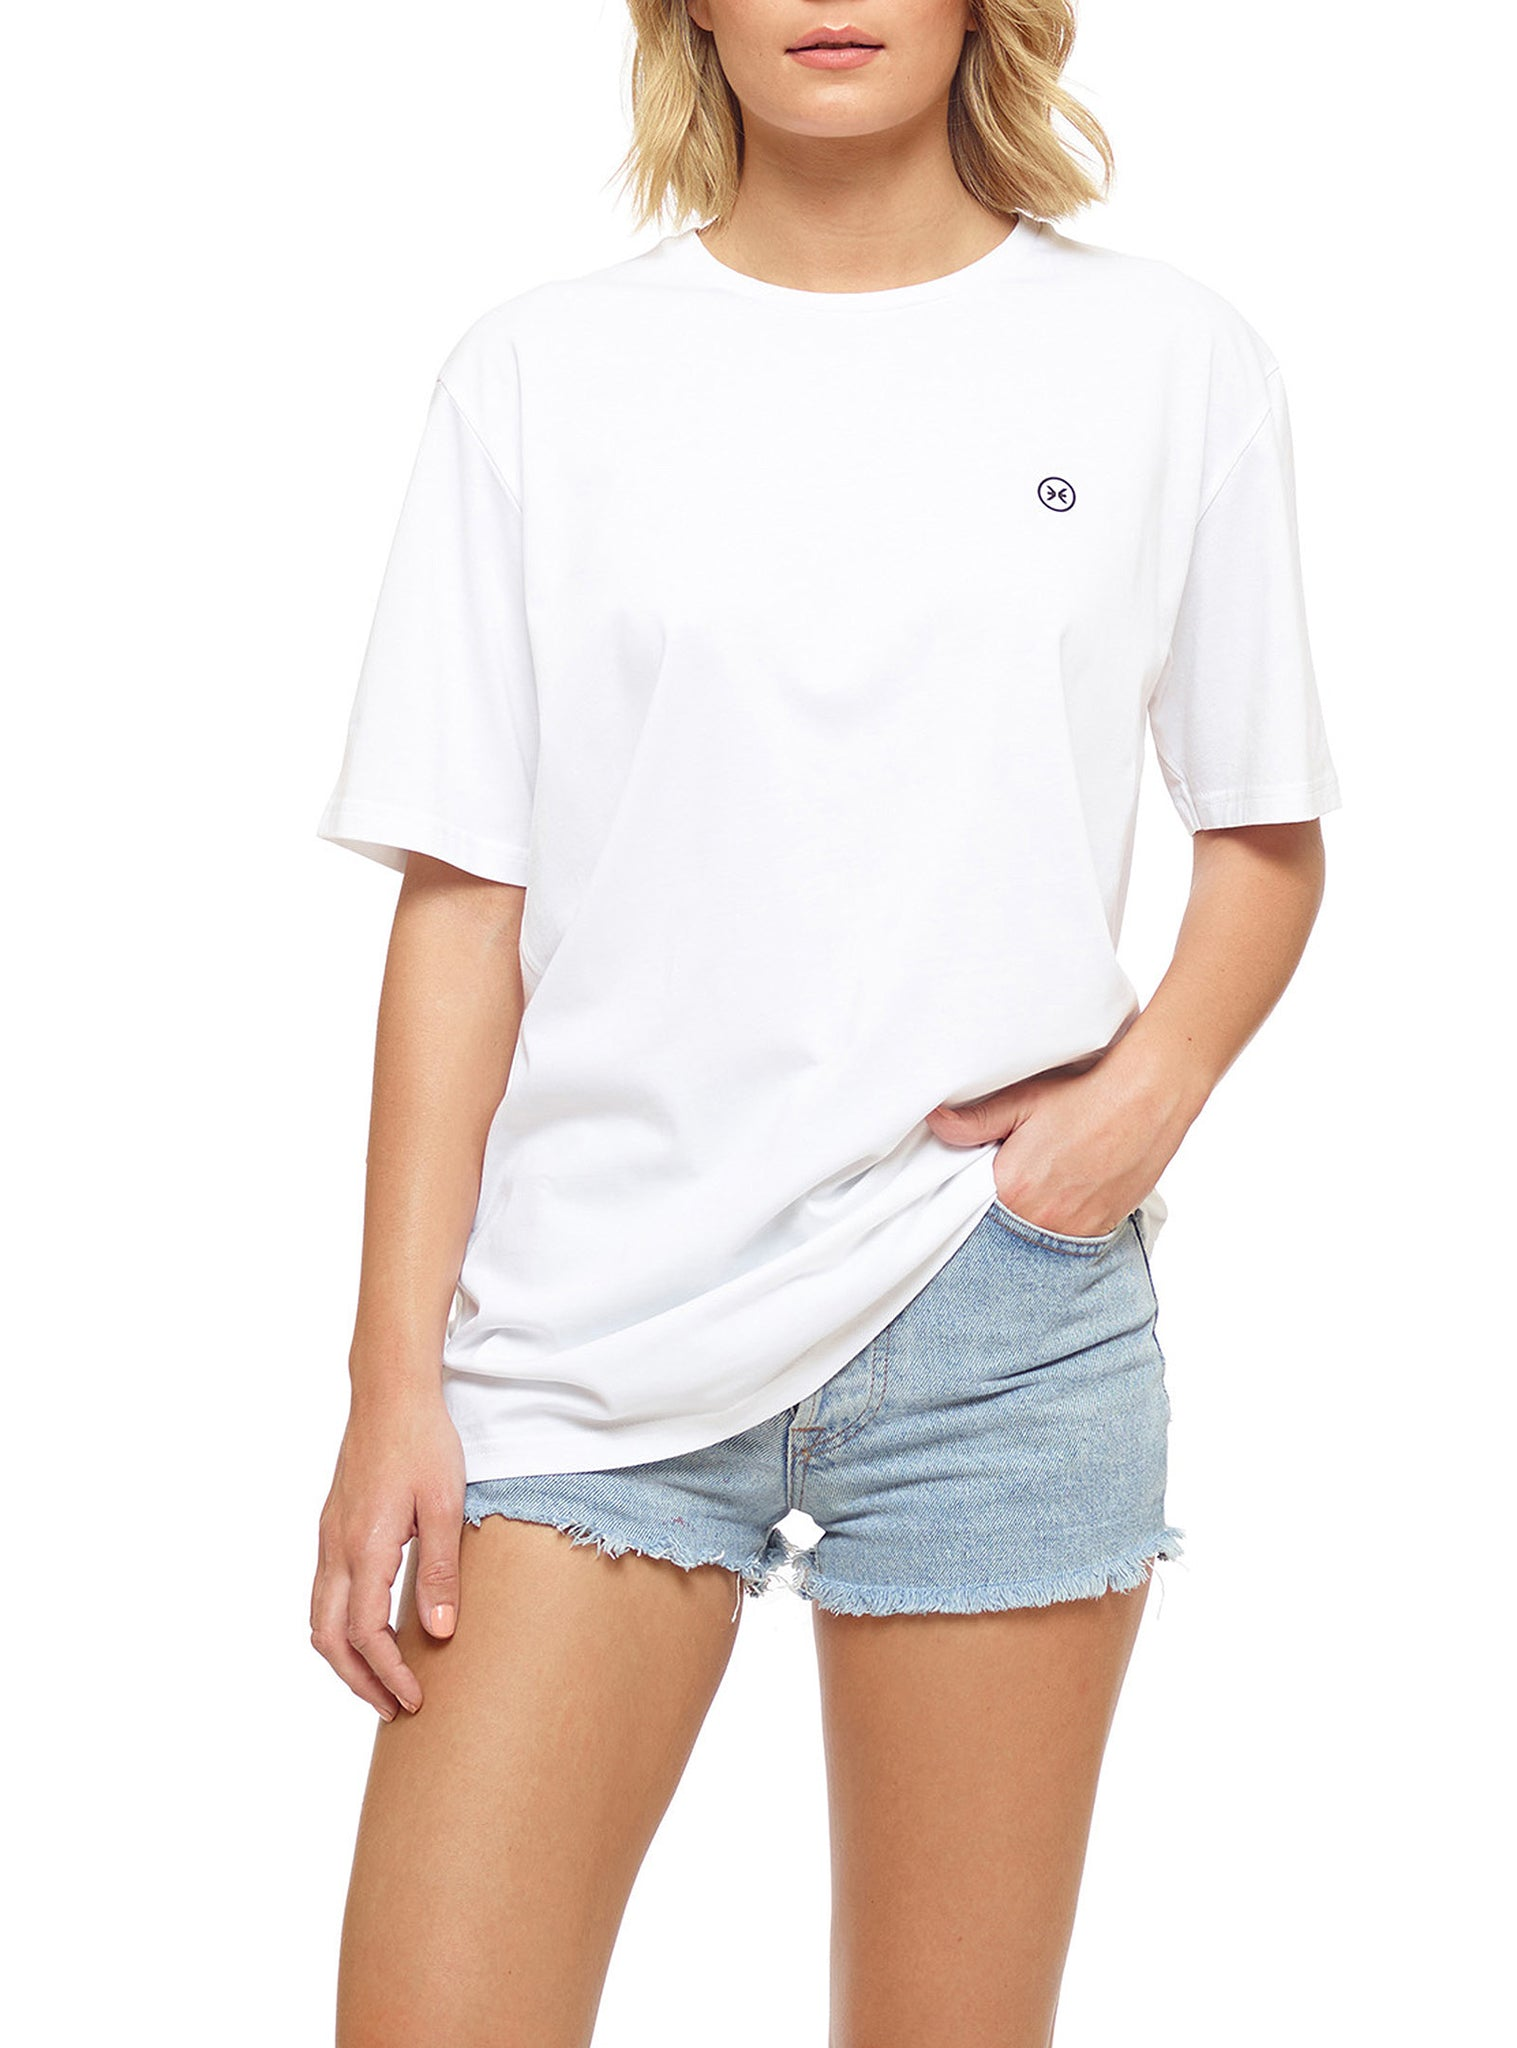 Embroidery T-shirt Branco